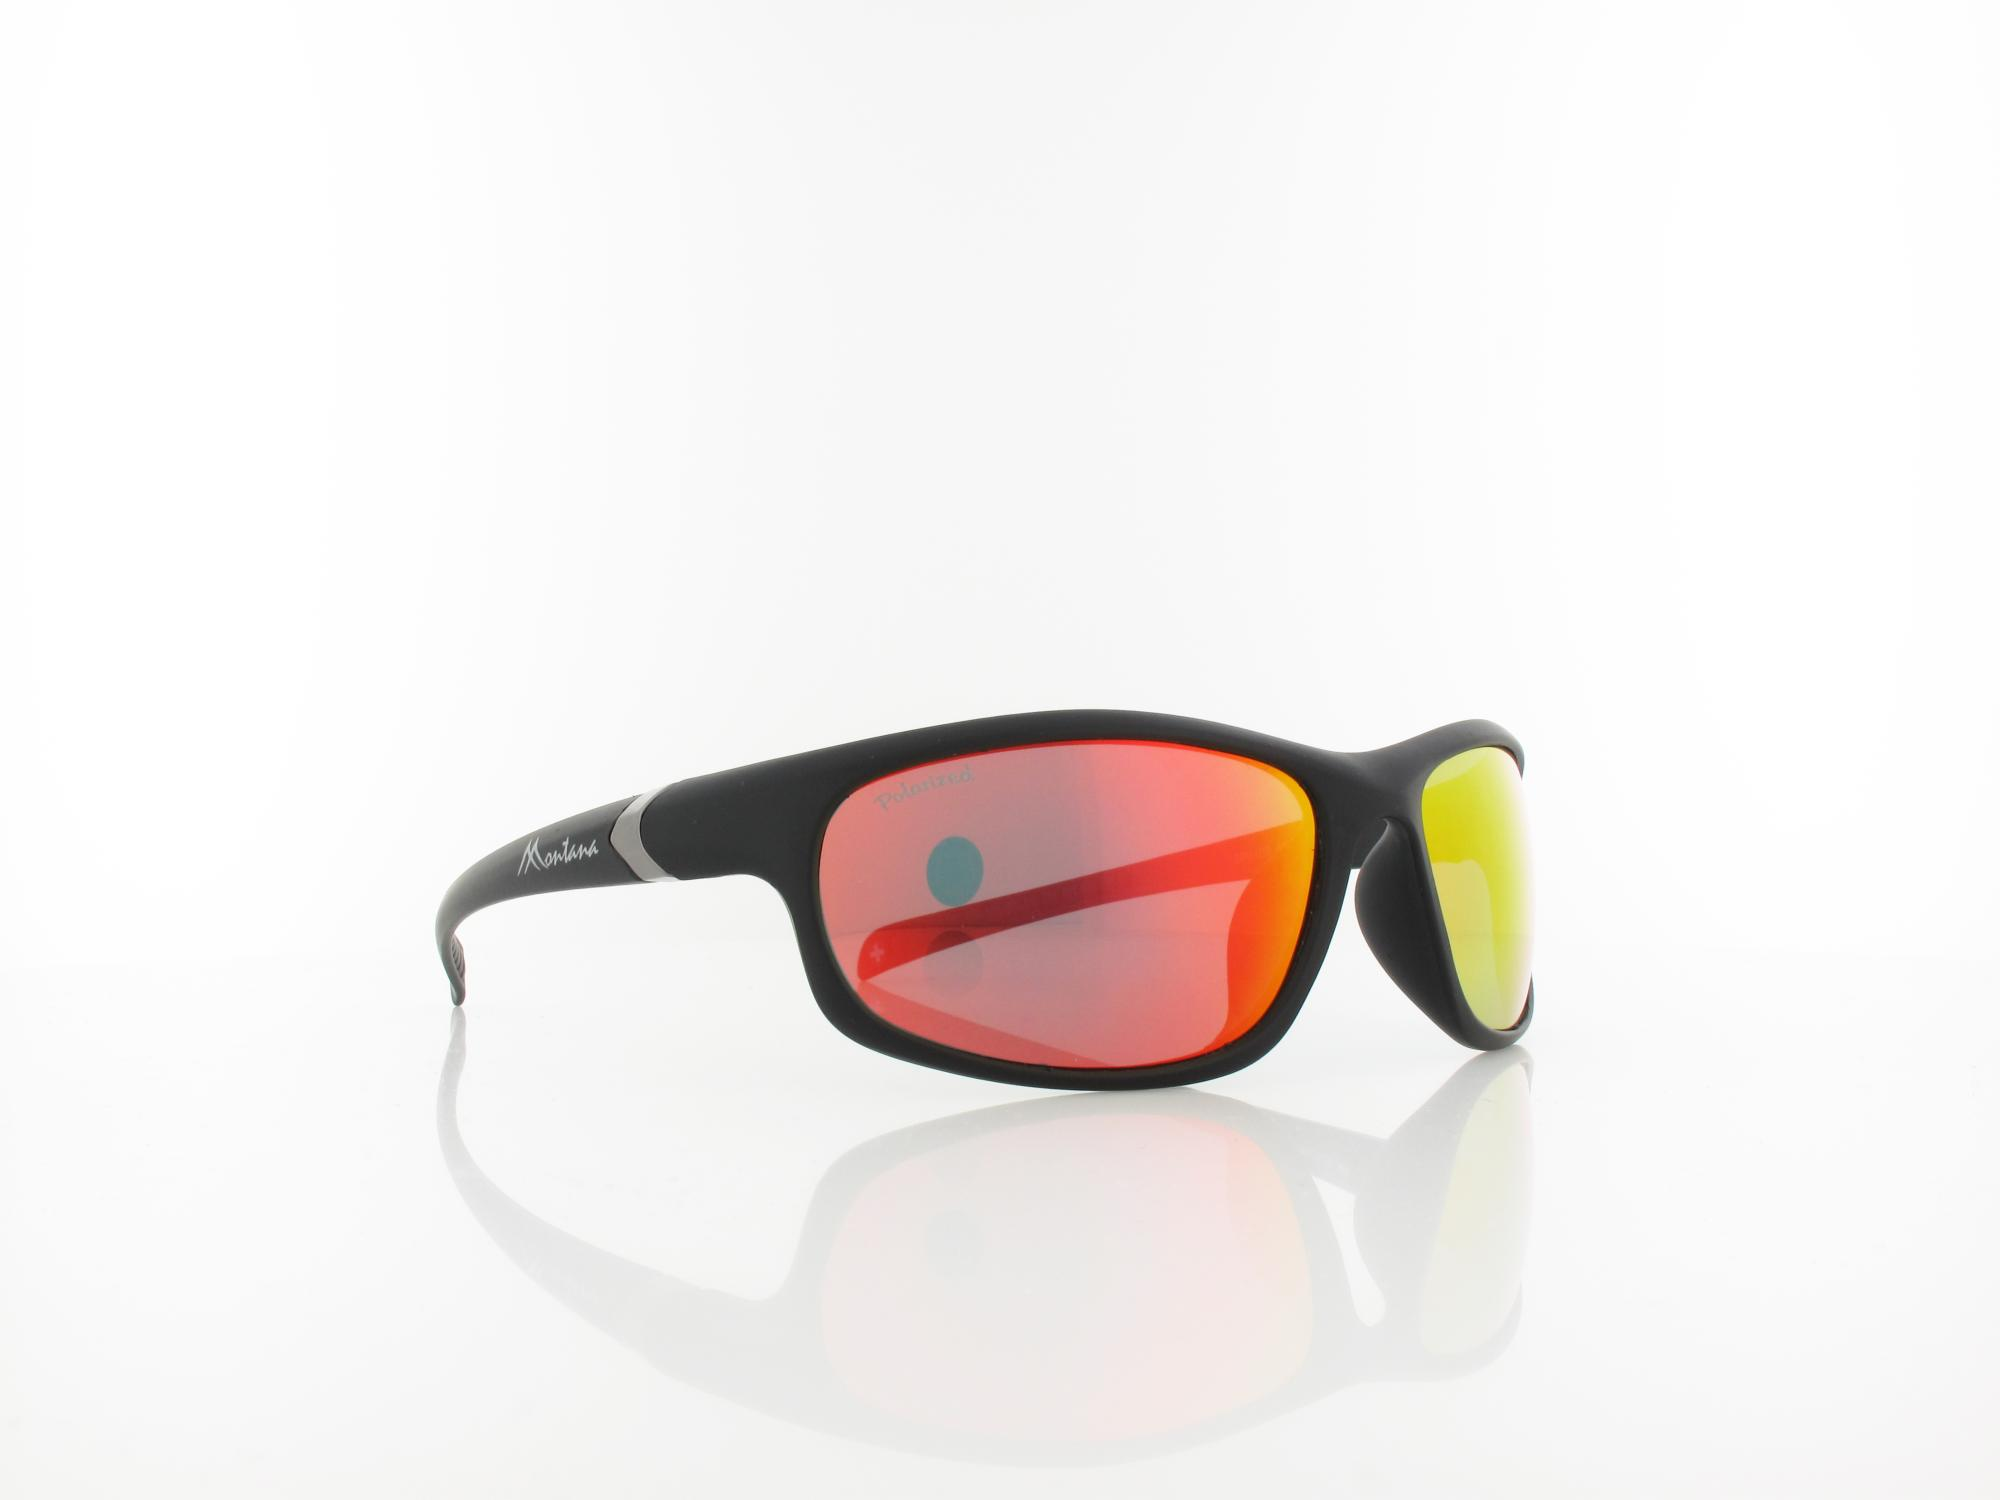 Brilando | SP310 B 60 | black / orange mirror polarized